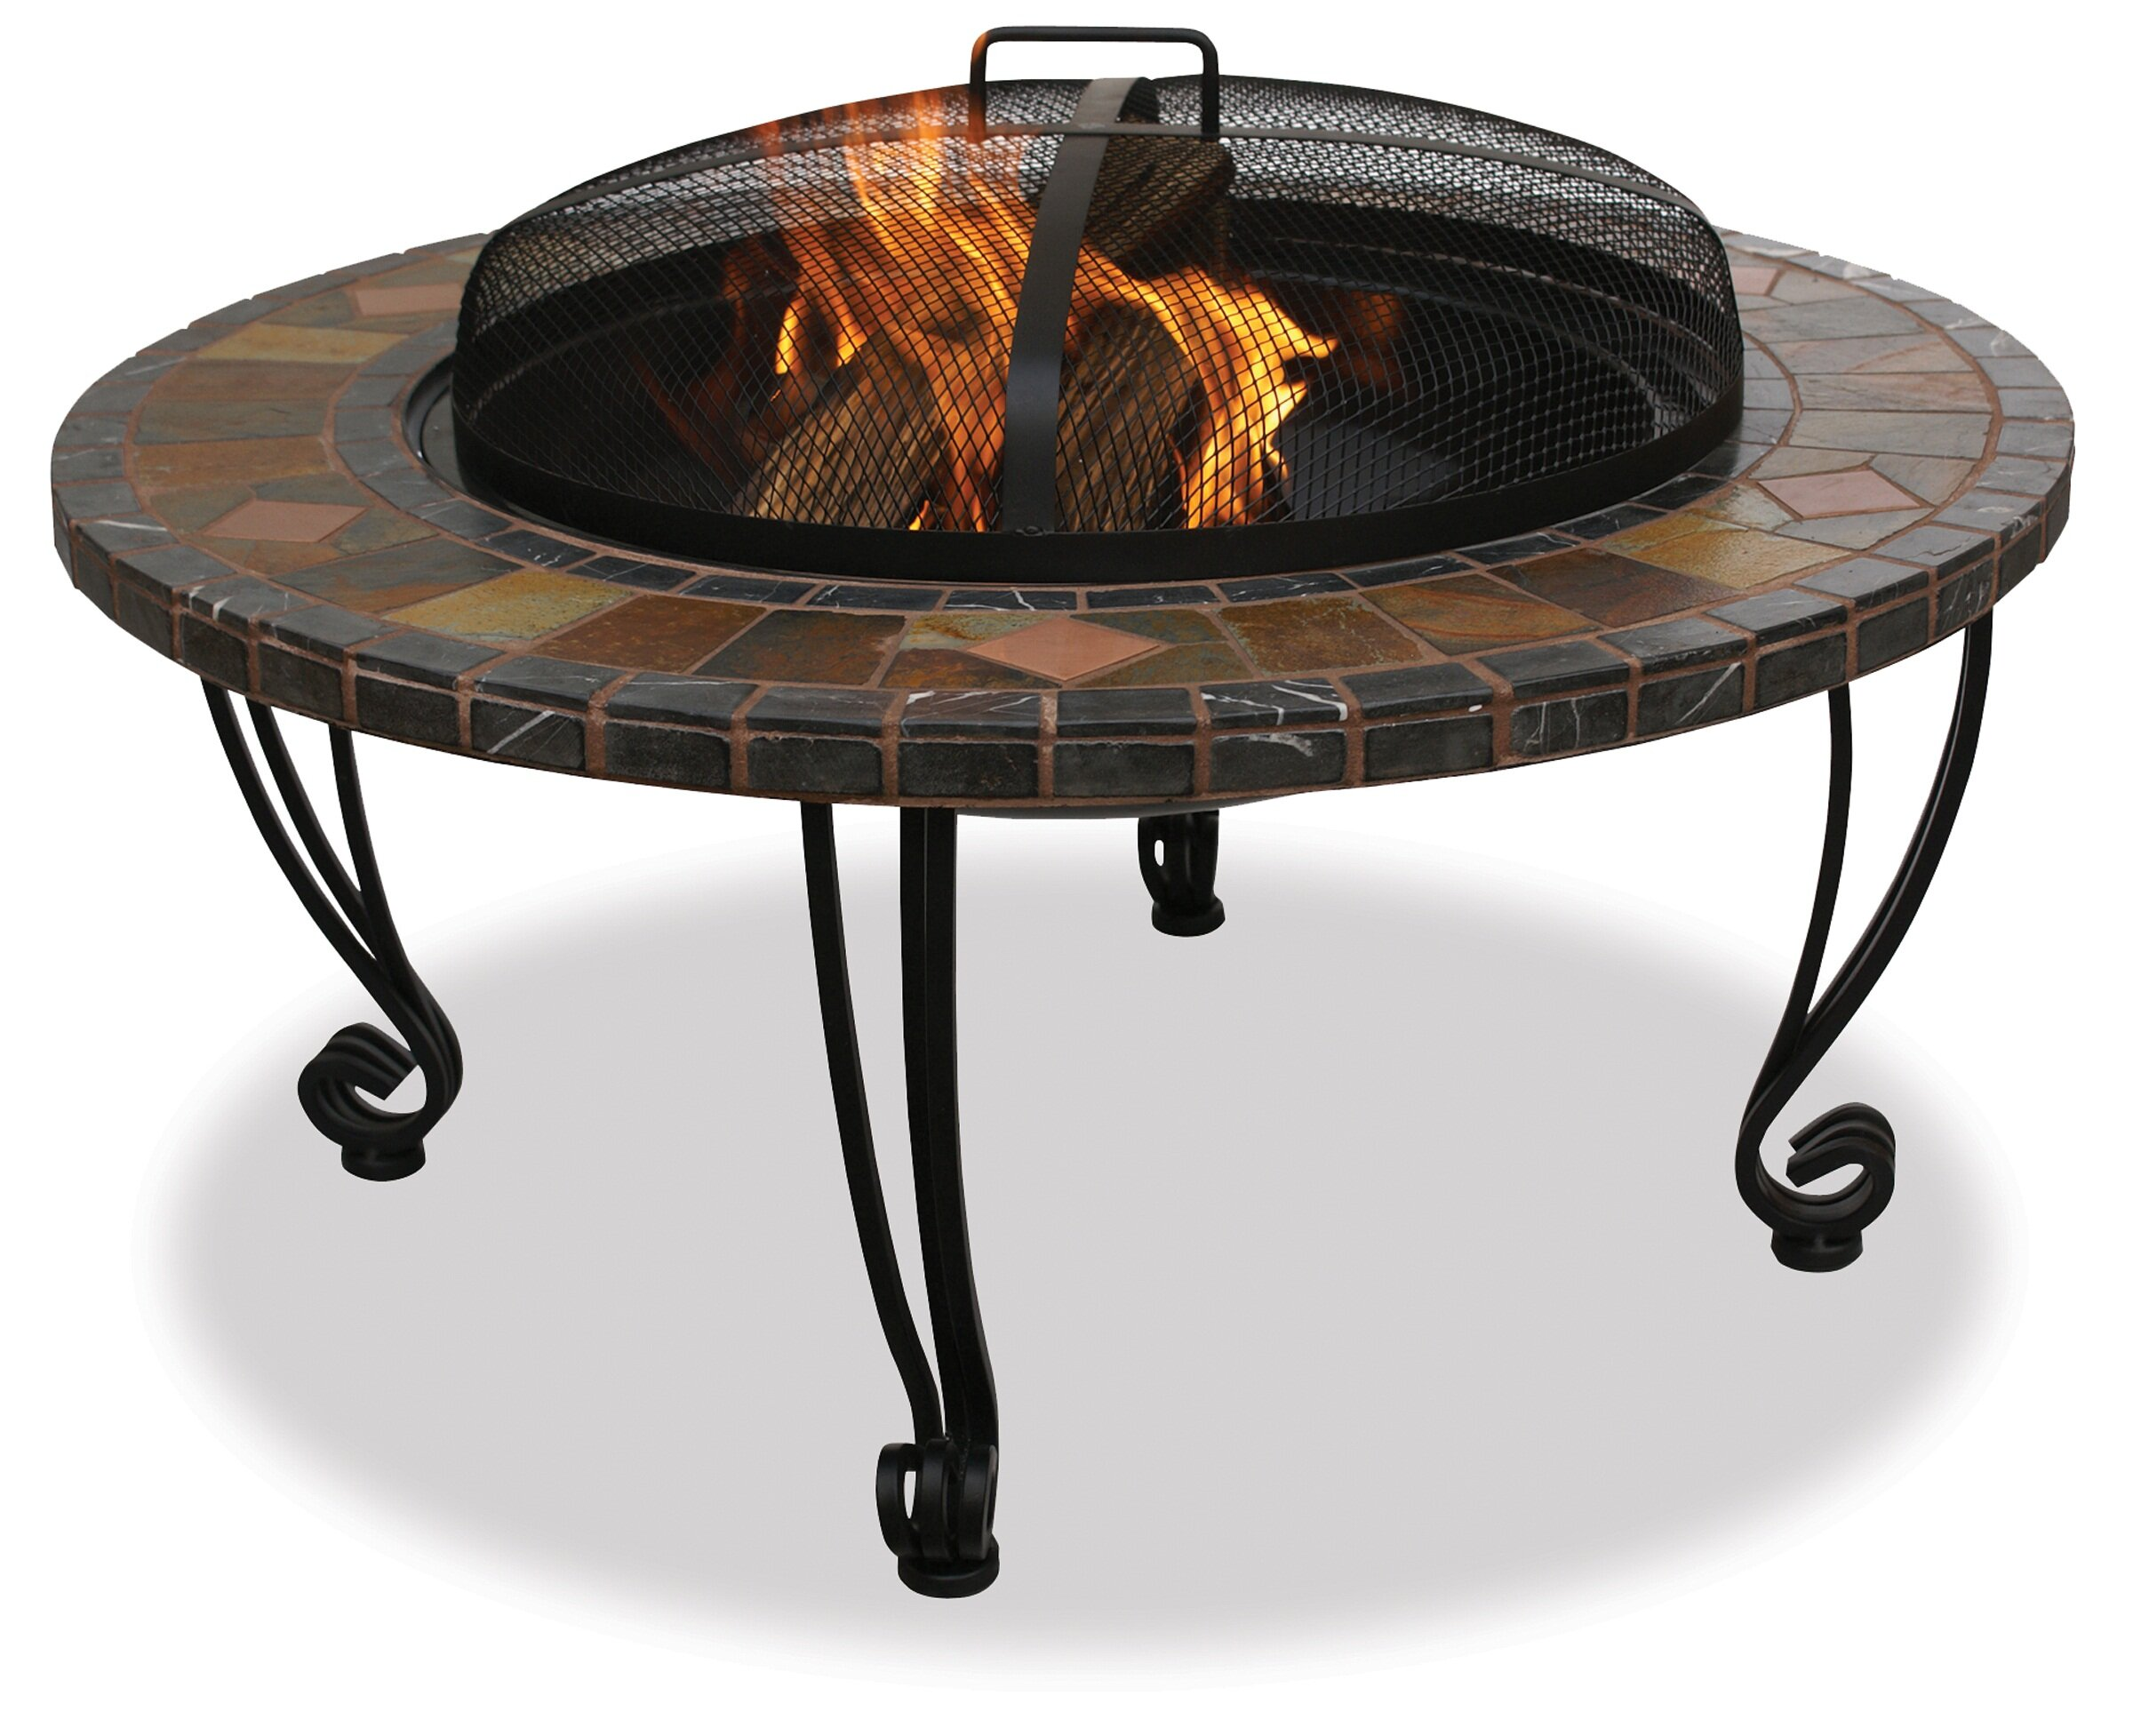 Exceptionnel Blue Rhino Uniflame Wrought Iron Wood Burning Fire Pit Table | Wayfair